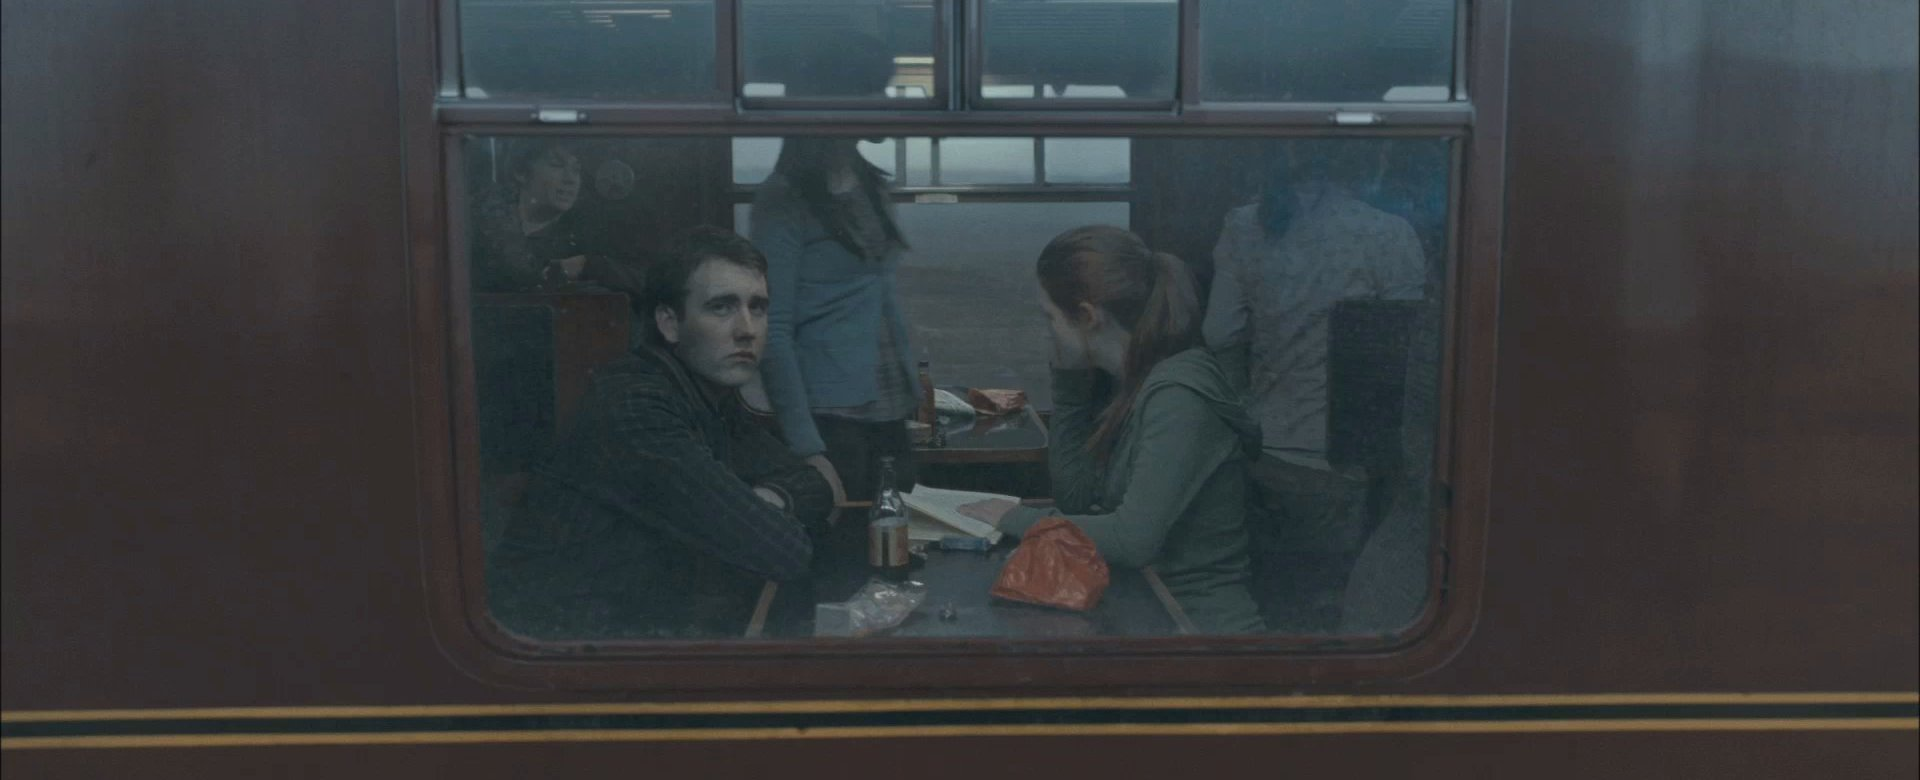 Top Wallpaper Harry Potter Square - Neville-and-Ginny-harry-potter-and-the-deathly-hallows-movies-17181390-1920-780  Collection_5925100.jpg